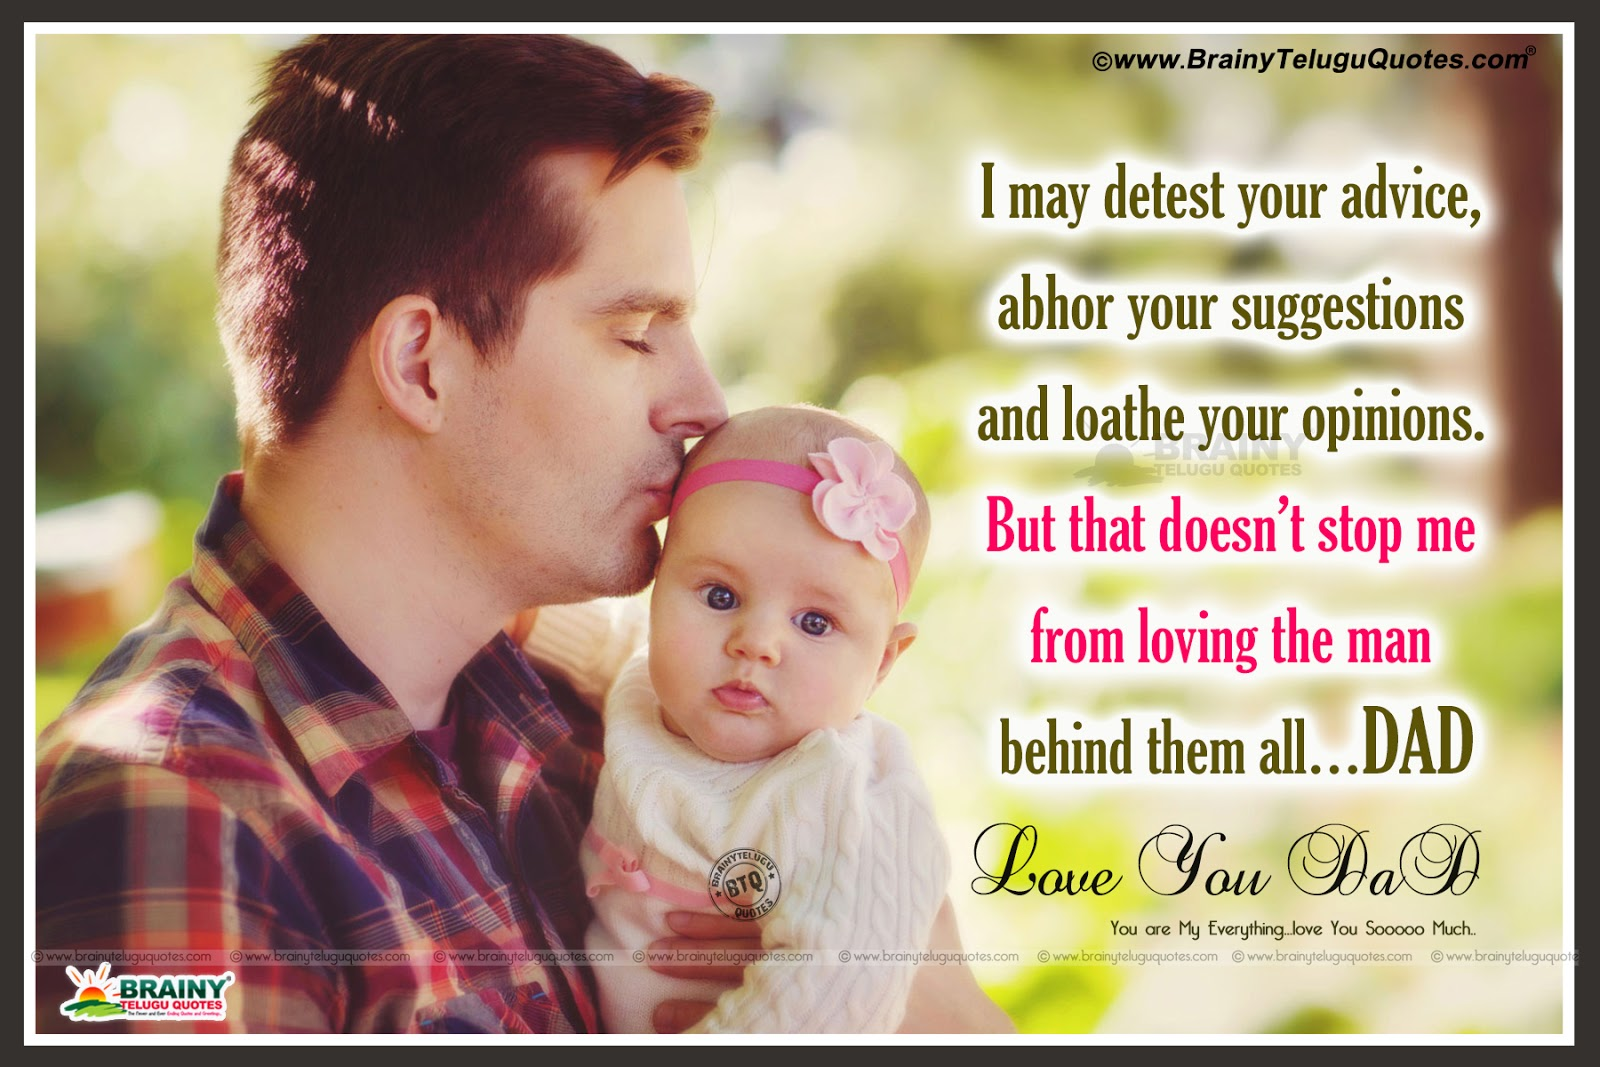 quotes on father and daughter relationship in urdu